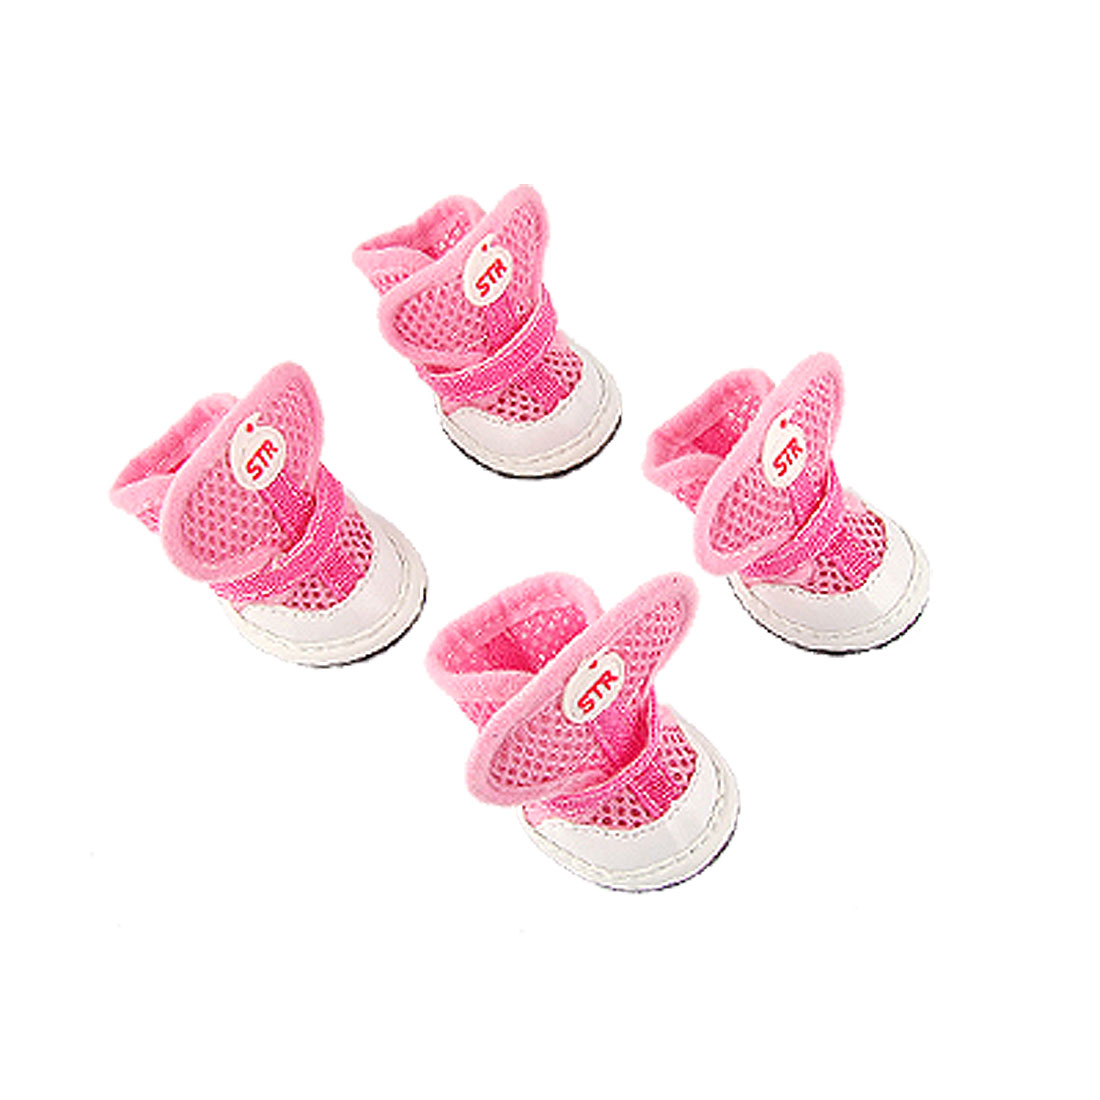 Dog Paw Adjustable Loop Fastener Antislip Sole Air Mesh Shoes Pink 4